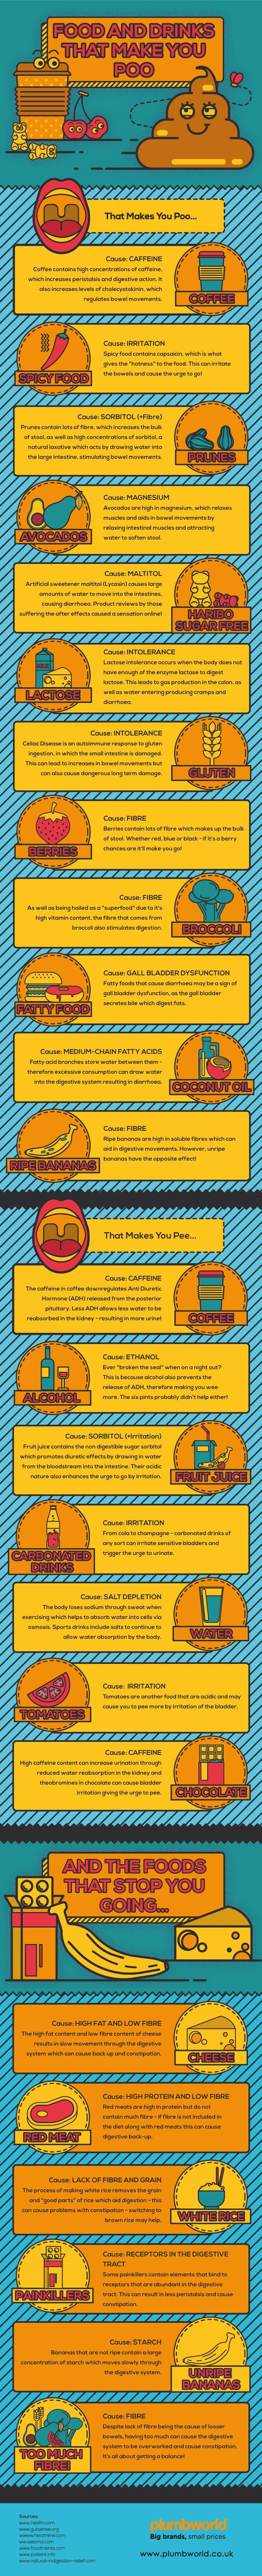 Food and Drinks that Make you Poo Infographic